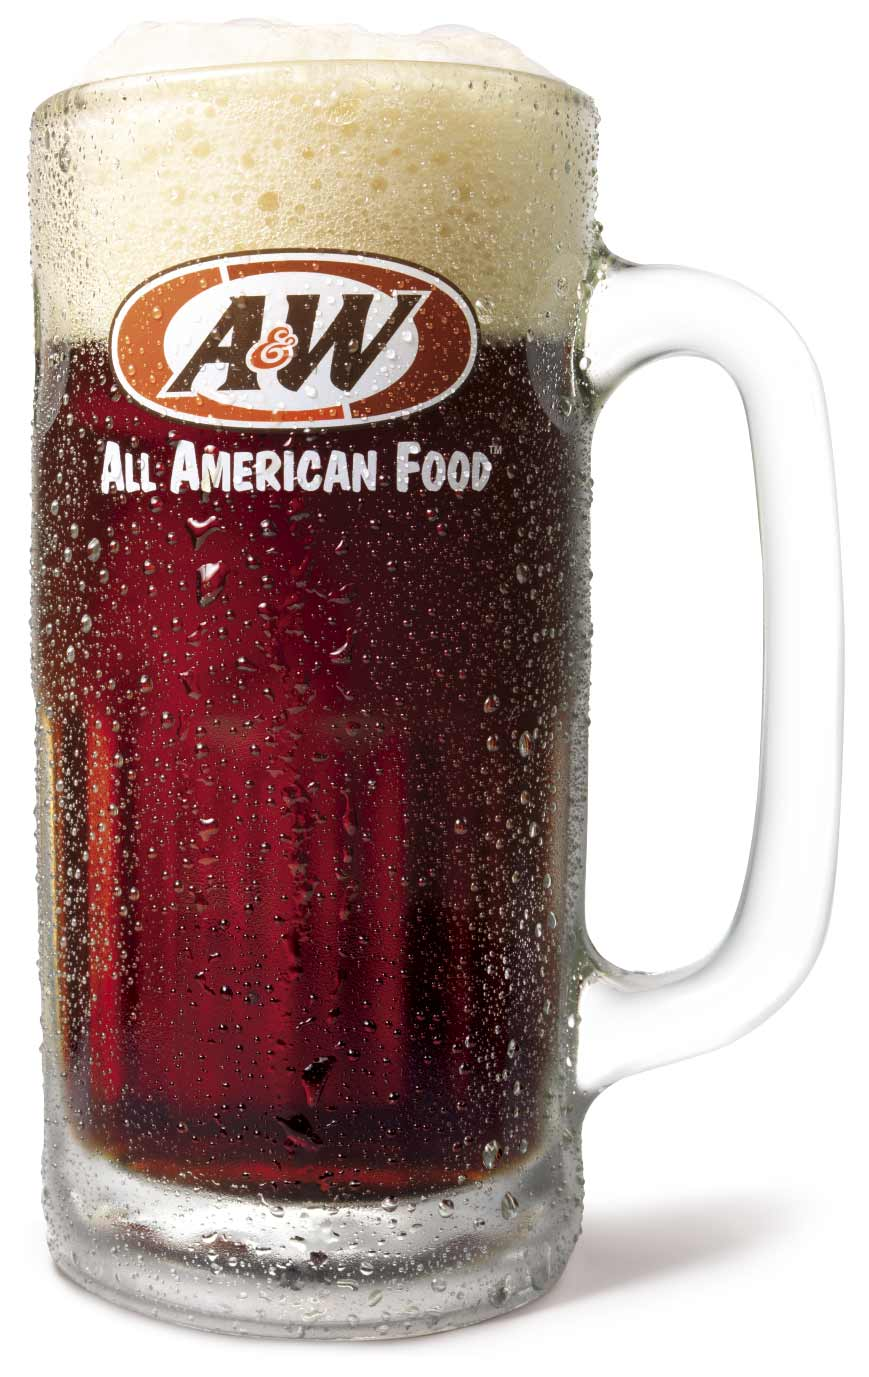 A&W All-American Food, Tomah WI